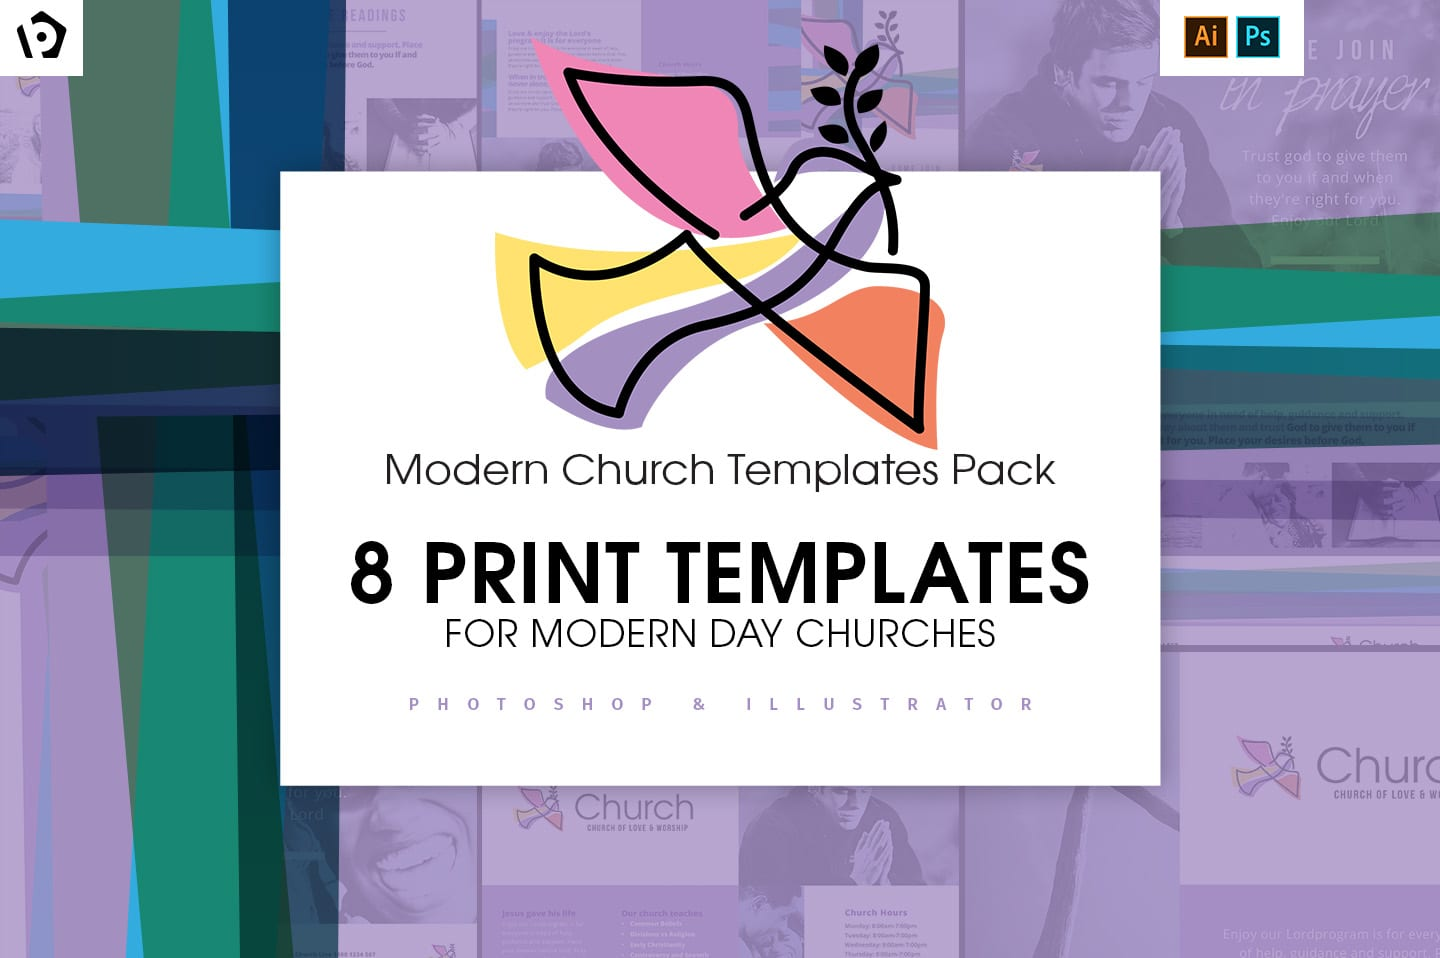 Modern Church Templates for Photoshop & Illustrator